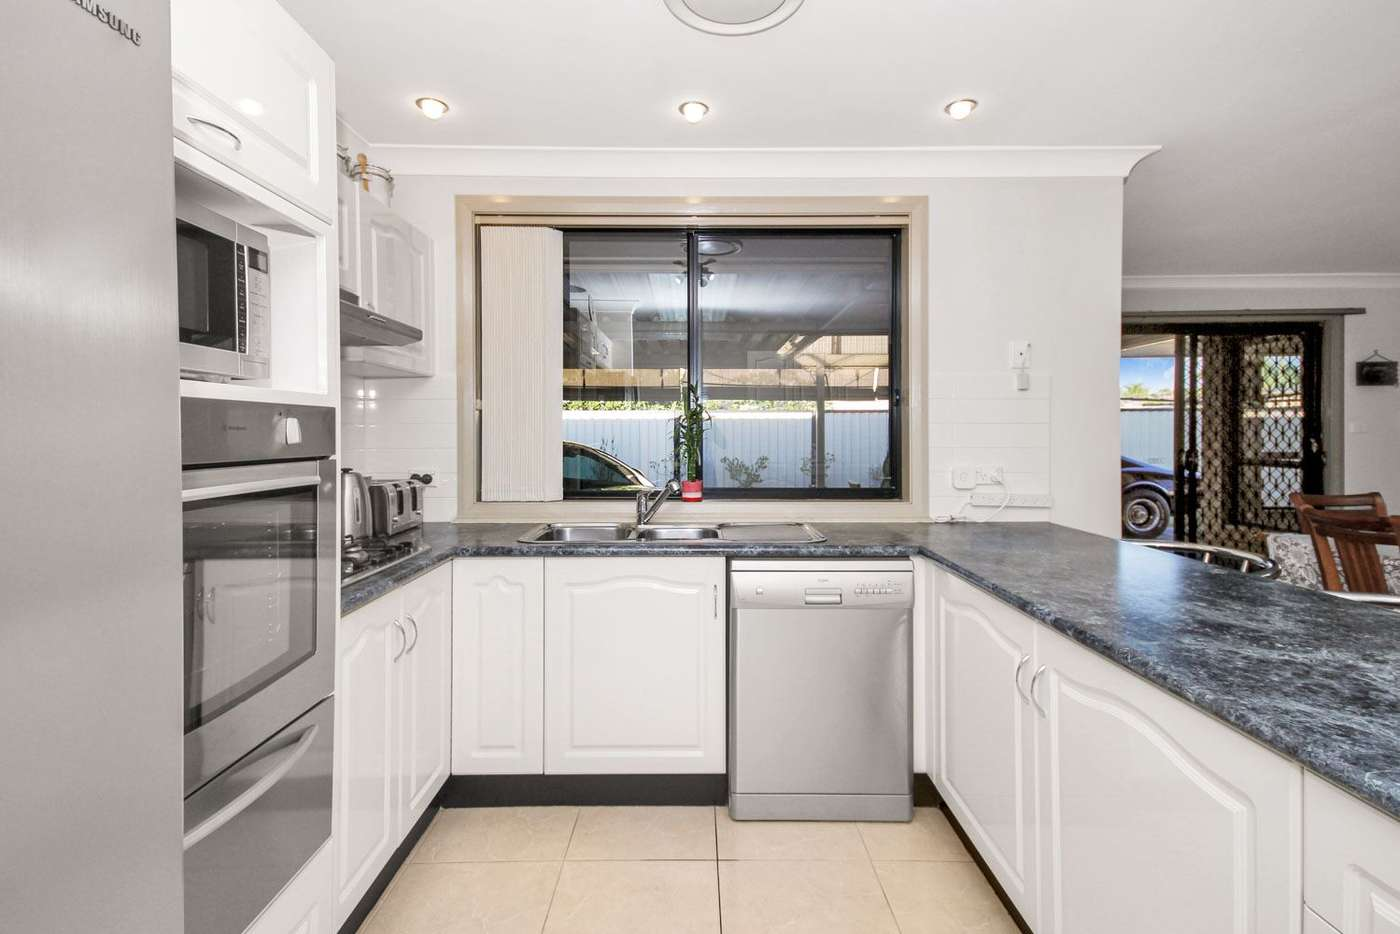 Fifth view of Homely house listing, 25 Granada Place, Oakhurst NSW 2761